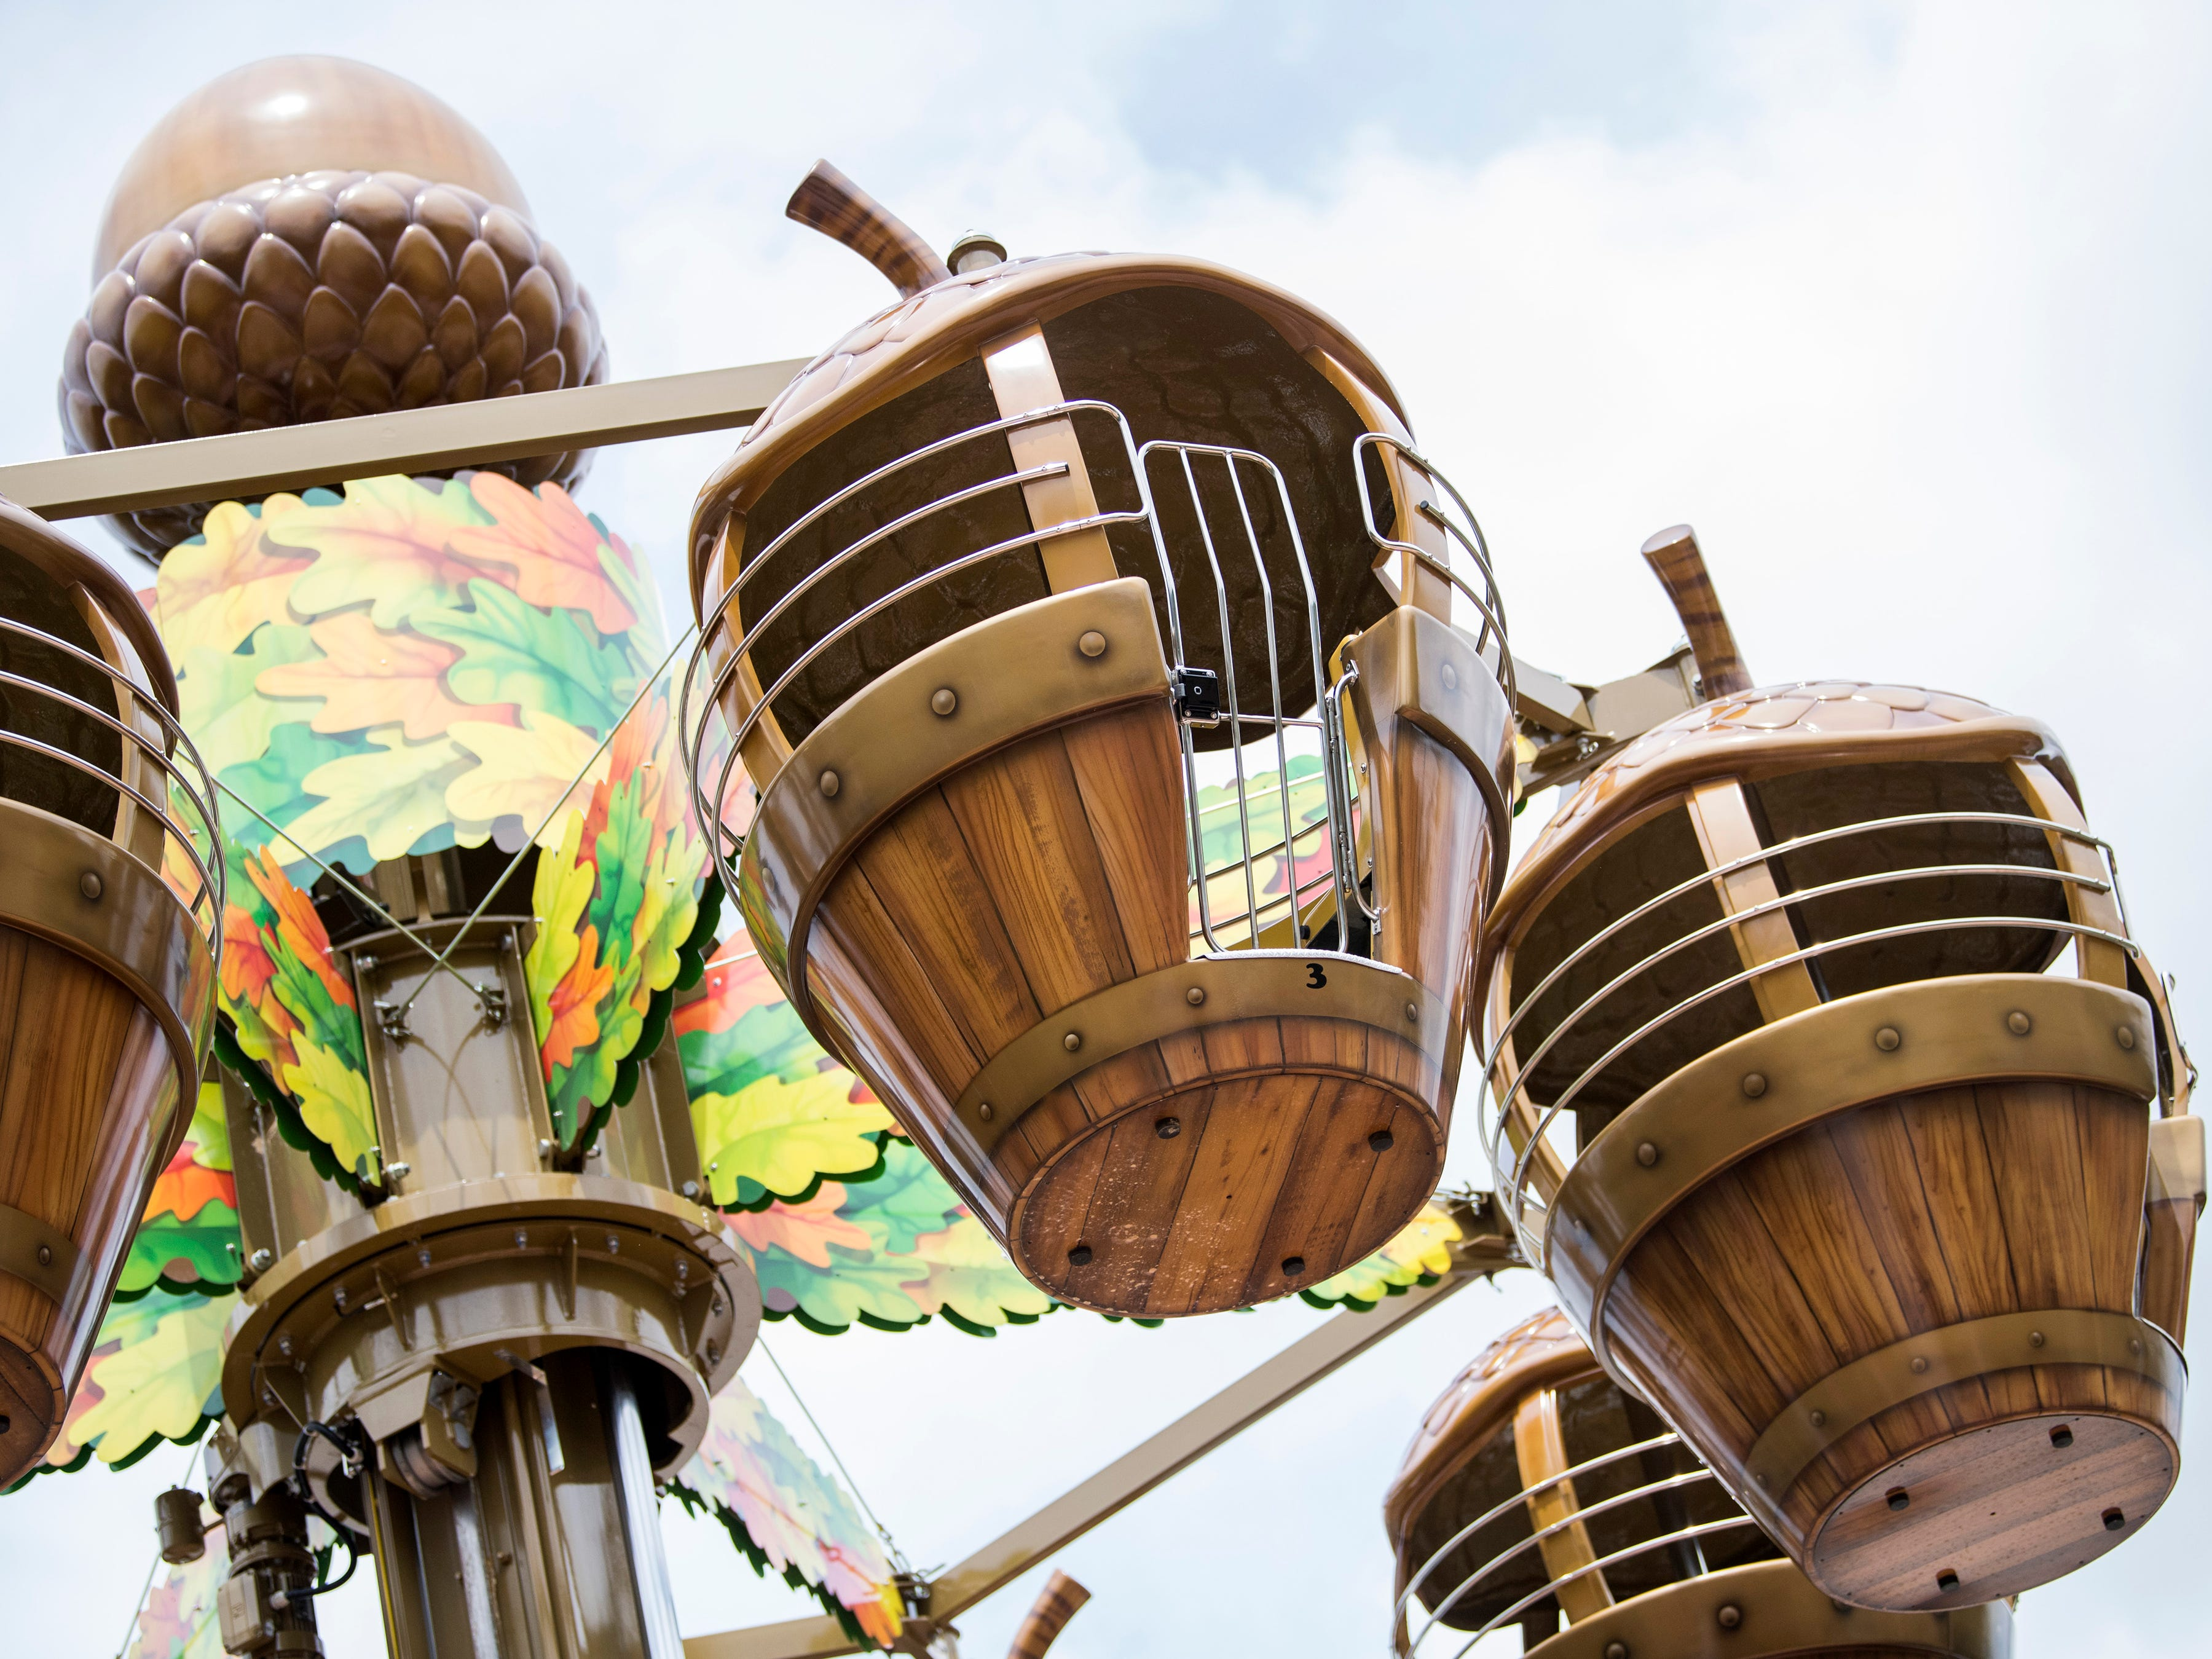 The Treetop Tower ride during the grand opening of Dollywood's new Wildwood Grove expansion on Friday, May 10, 2019.